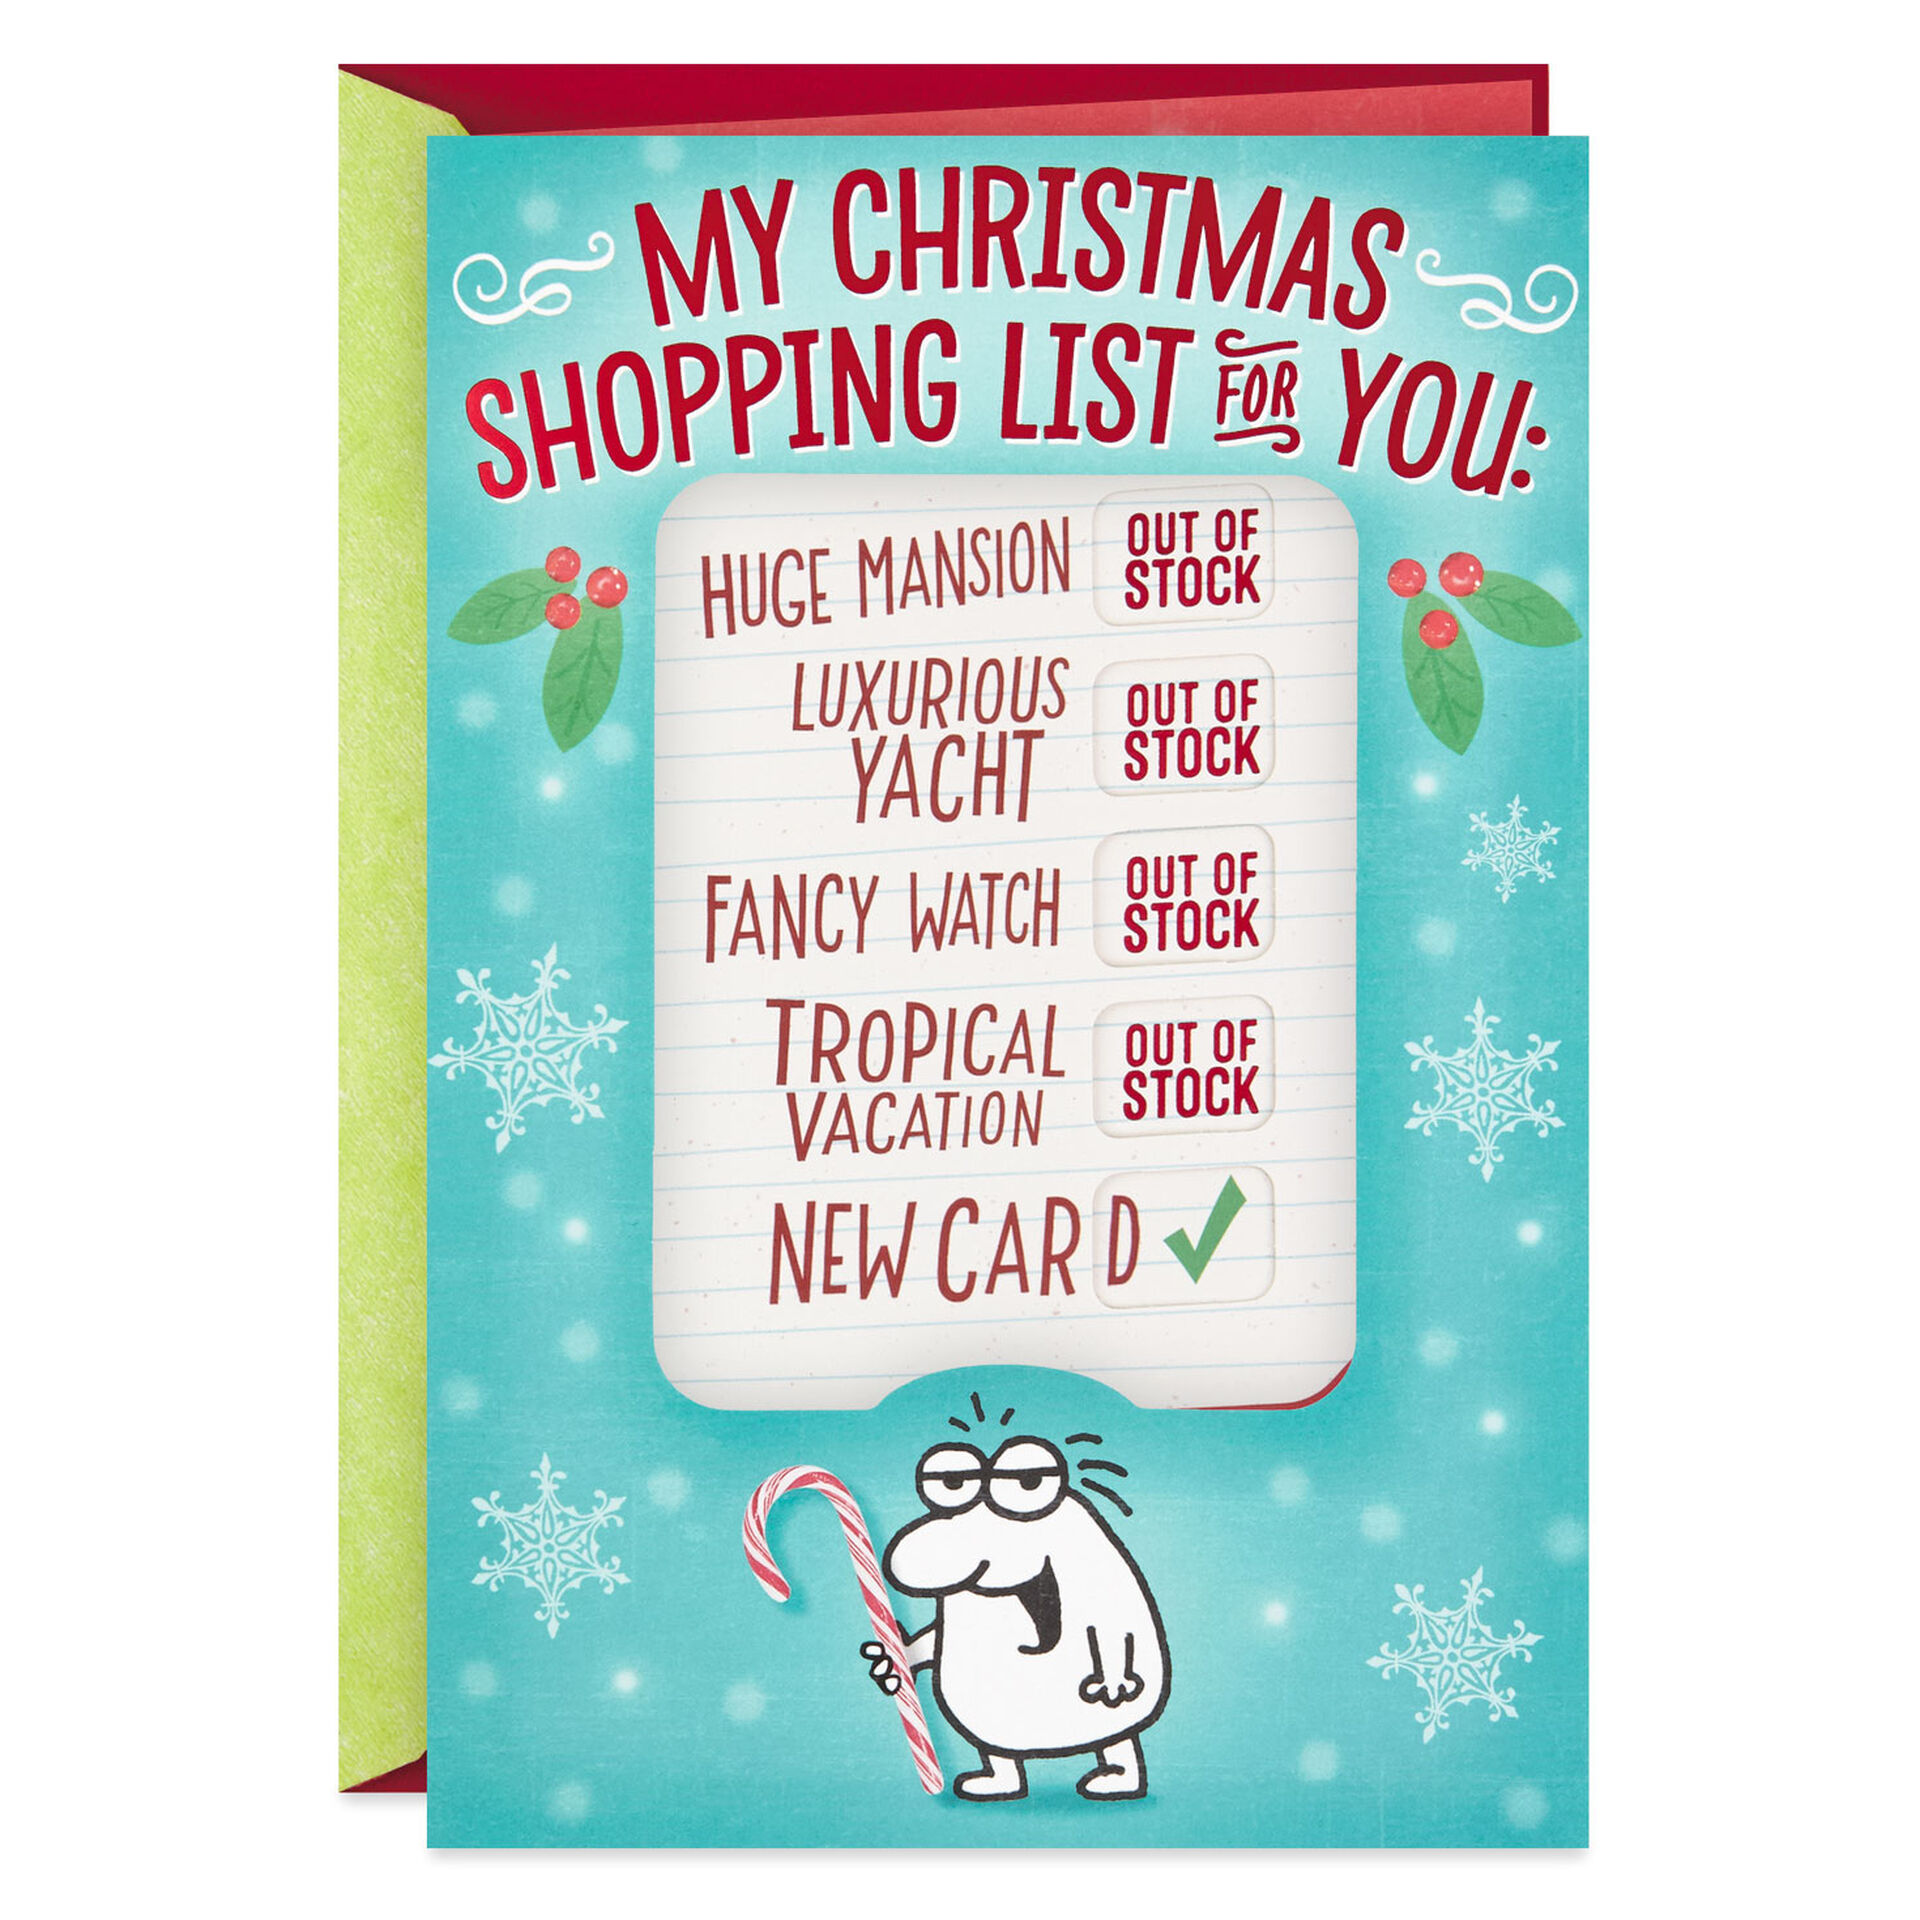 My Shopping List For You Funny Christmas Card Greeting Cards Hallmark